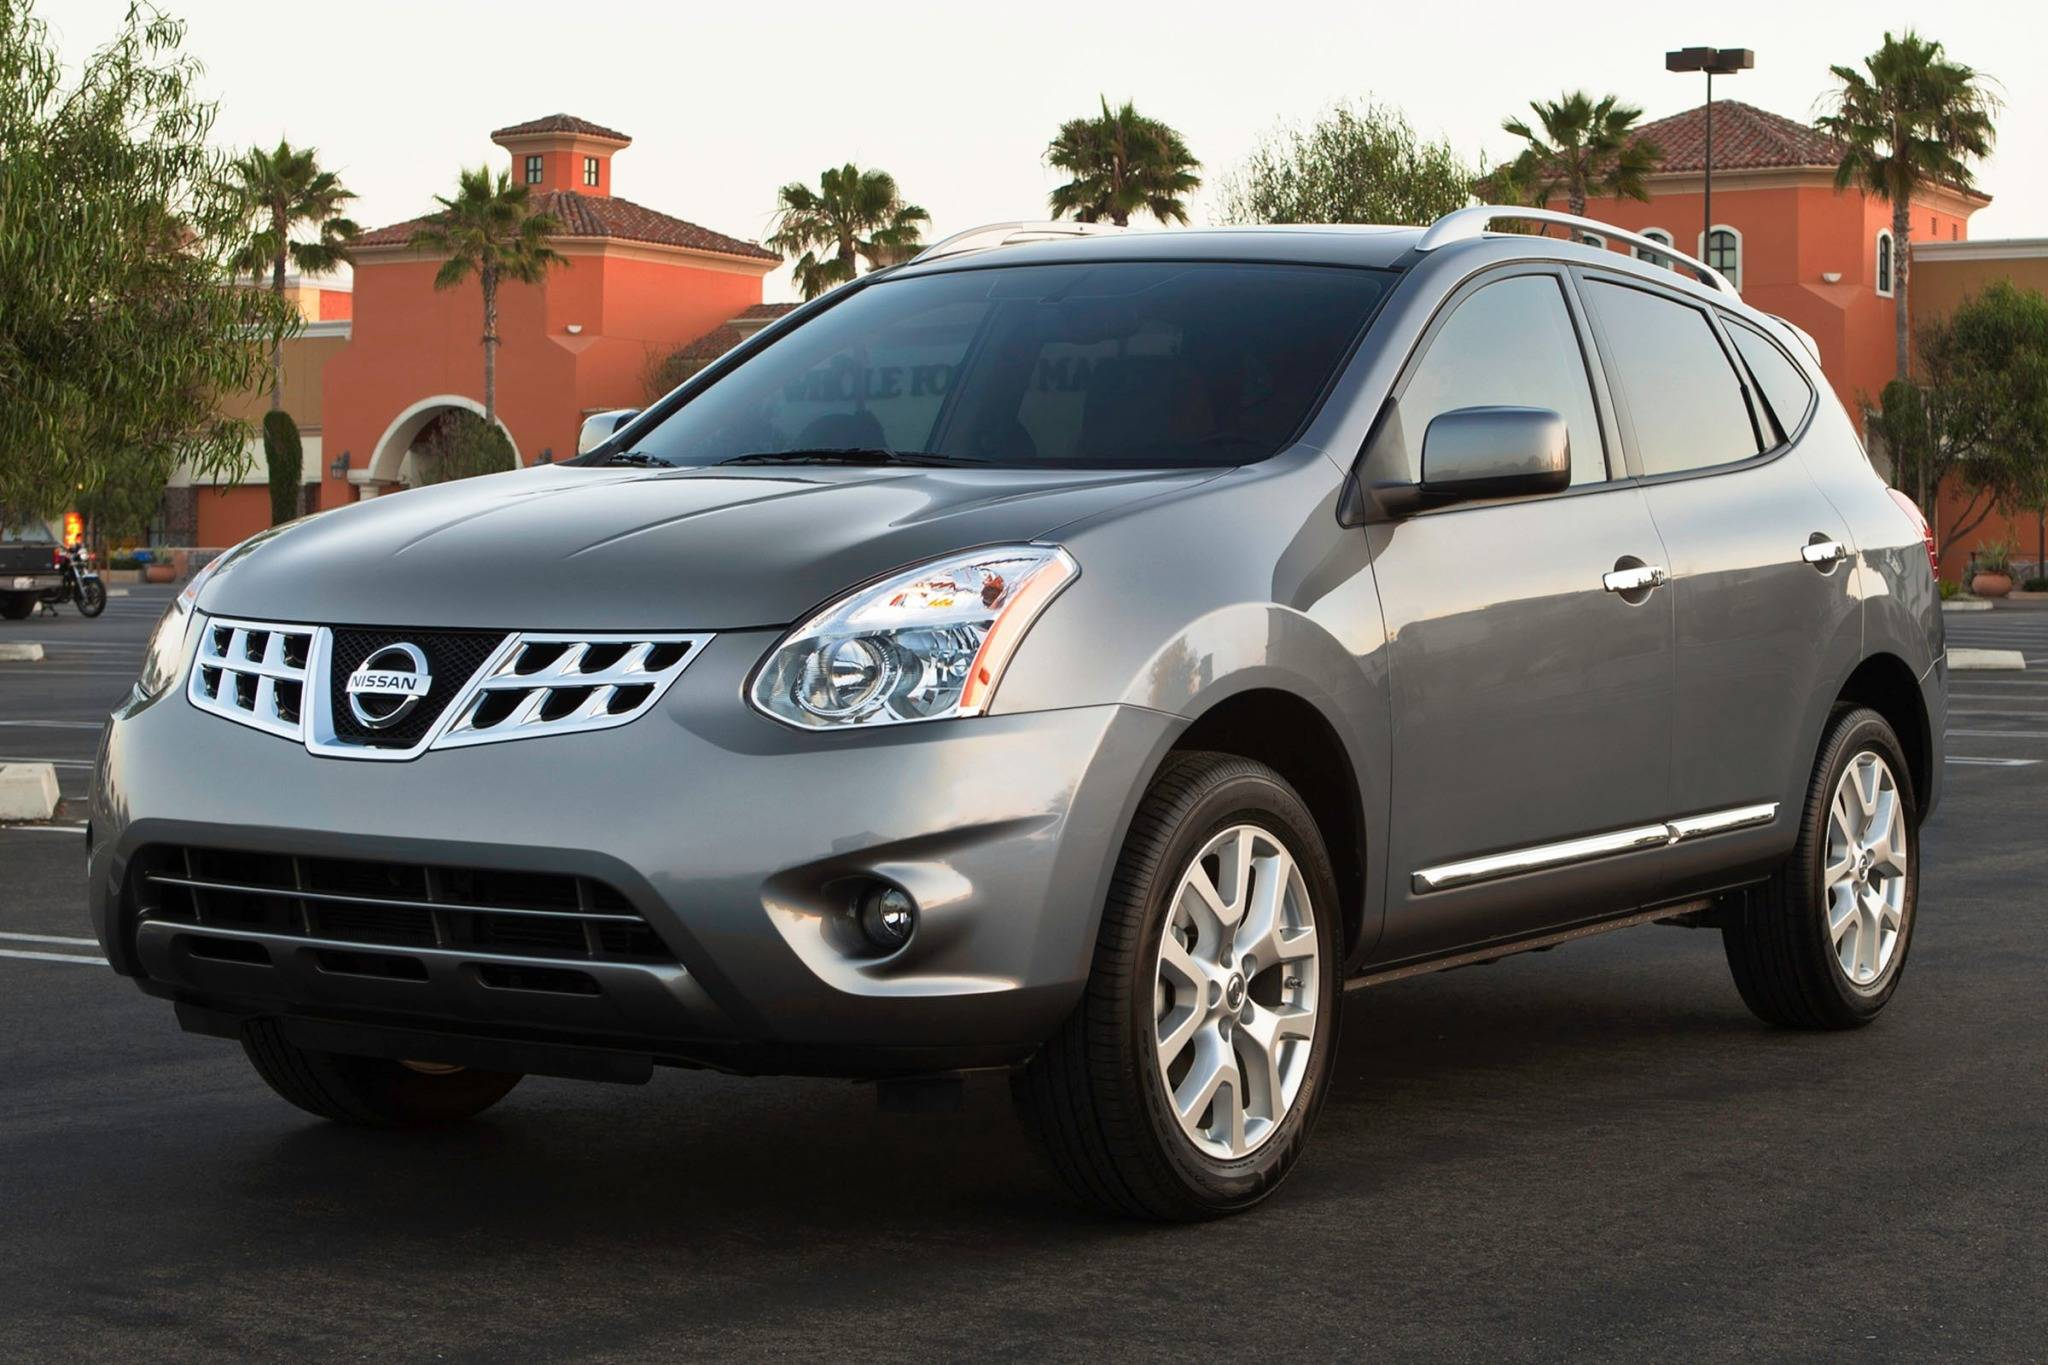 s jpg left commons file wiki nissan rogue front wikimedia awd